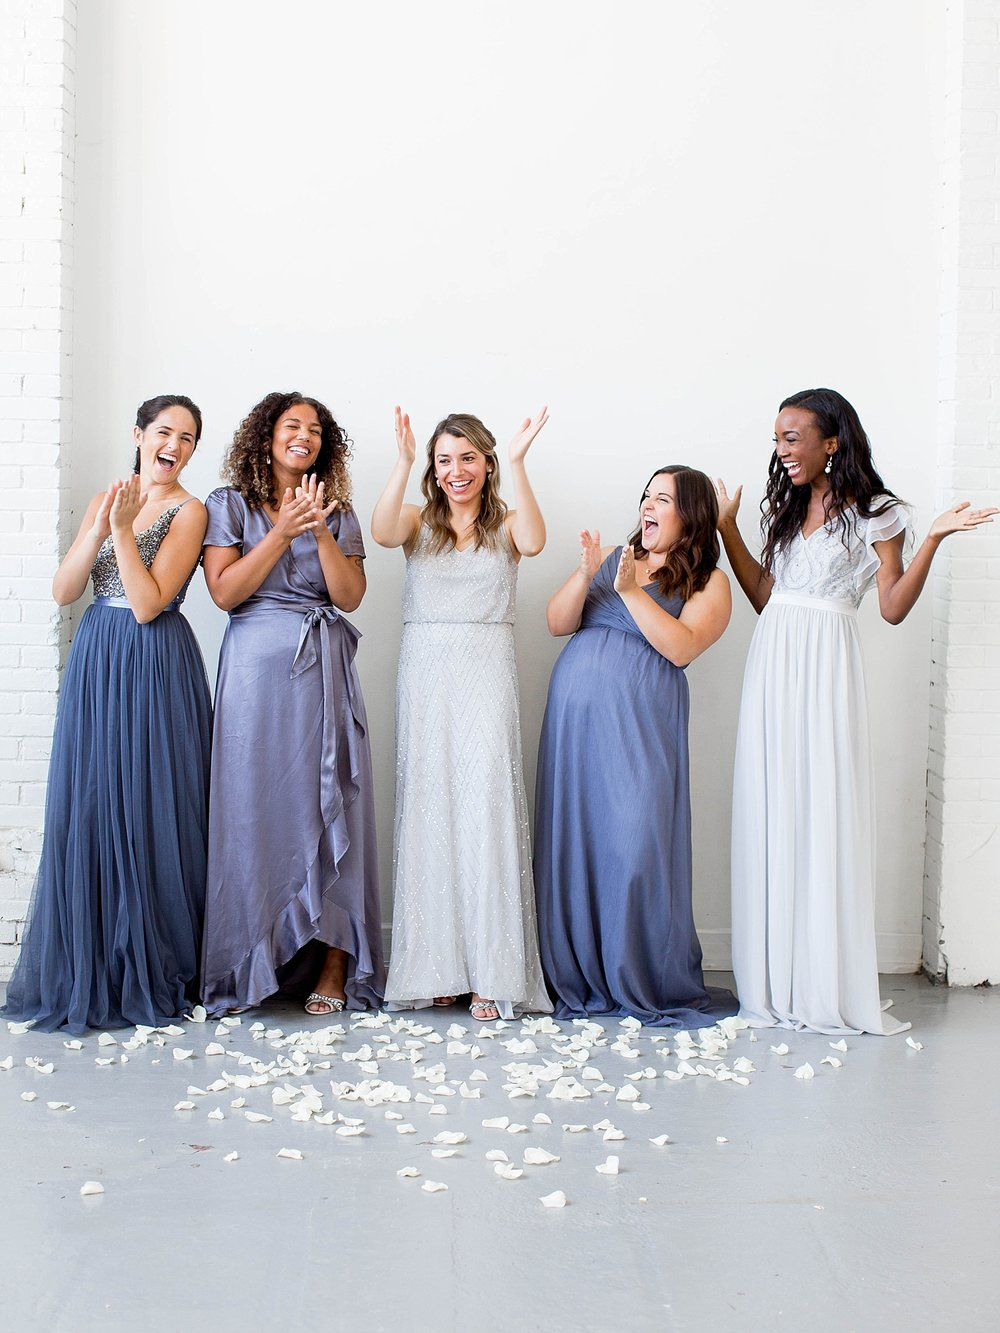 BHLDN Bridesmaids Dresses Campaign Philadelphia New Jersey Wedding Fashion Photography by Kelee Bovelle_0031.jpg